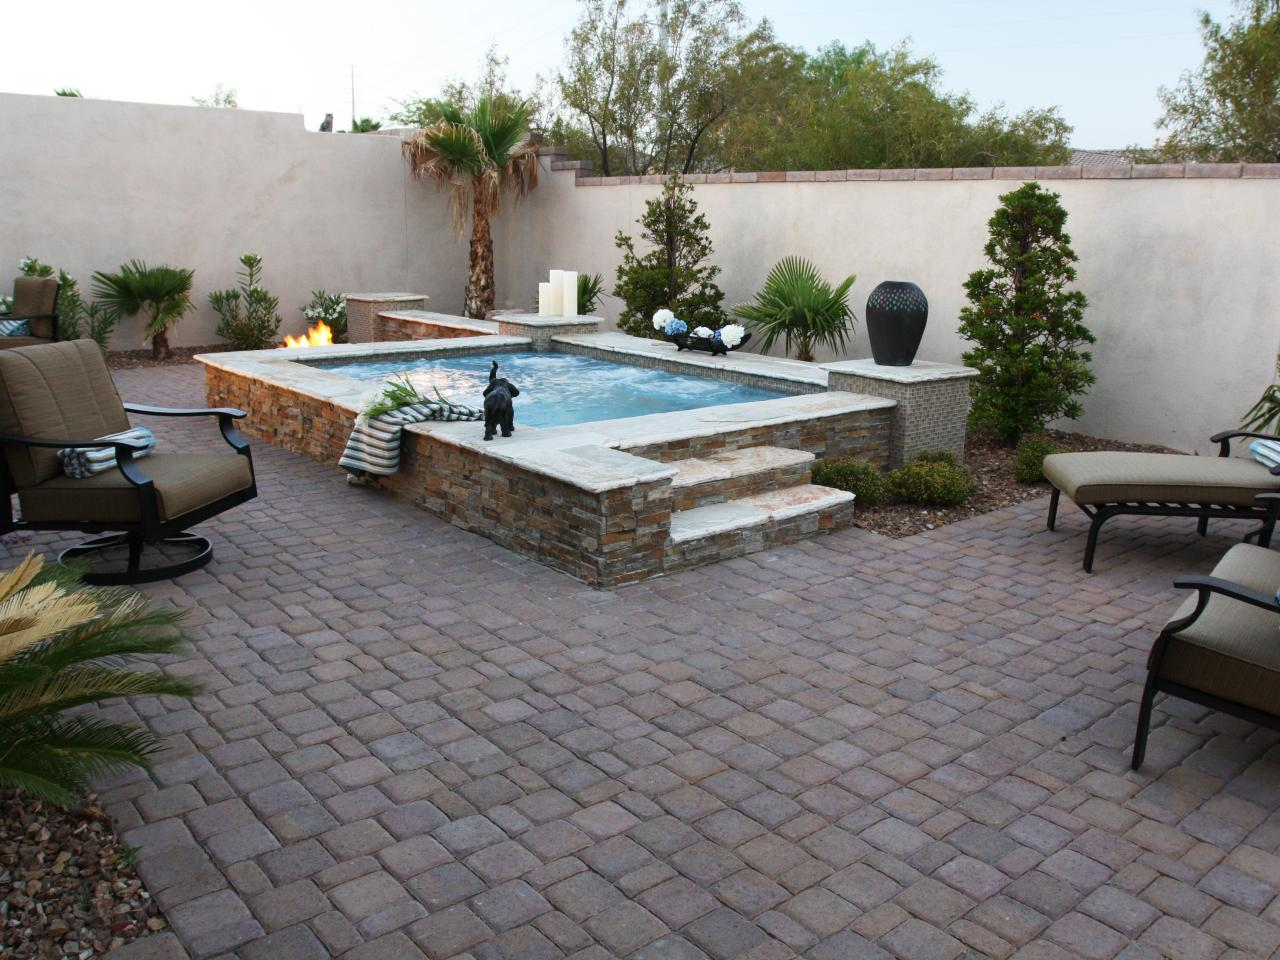 Jacuzzi Pool Bilder Gorgeous Decks And Patios With Hot Tubs Diy Deck